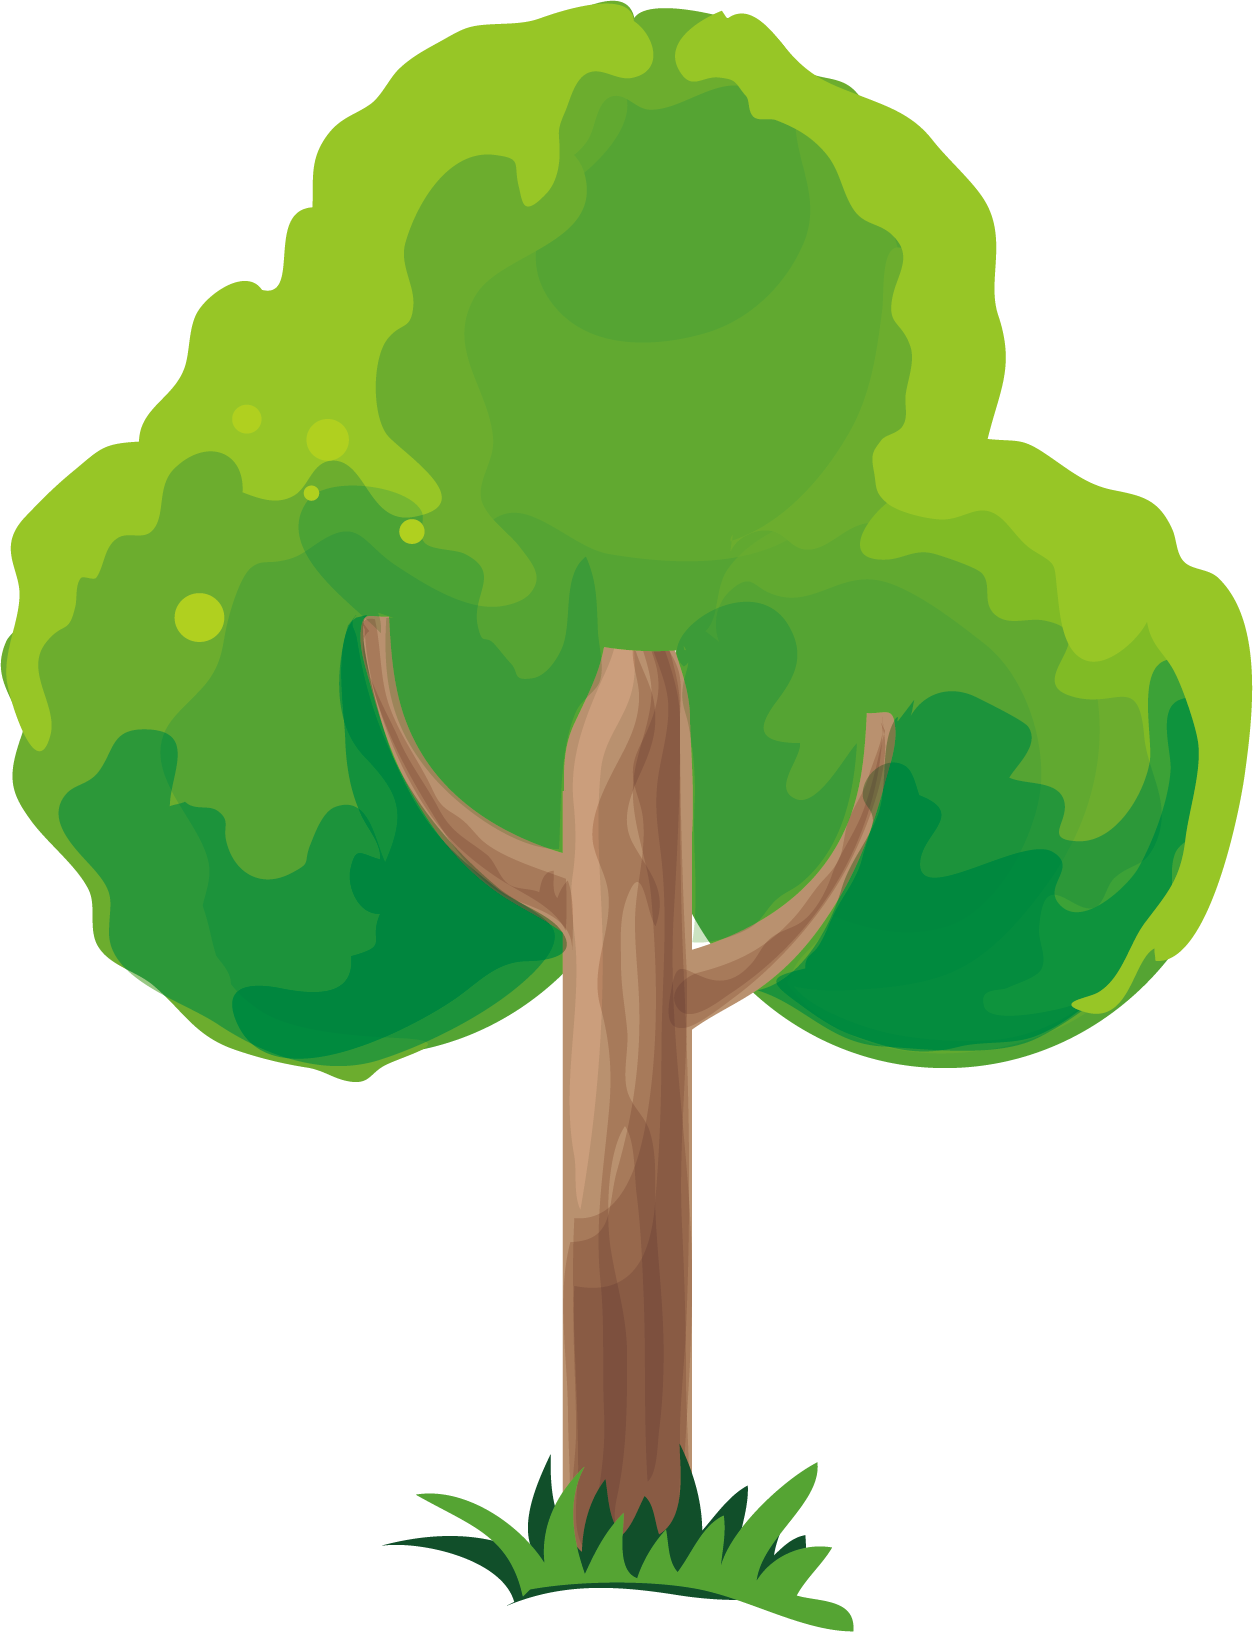 Trees vector png. Material transprent free download